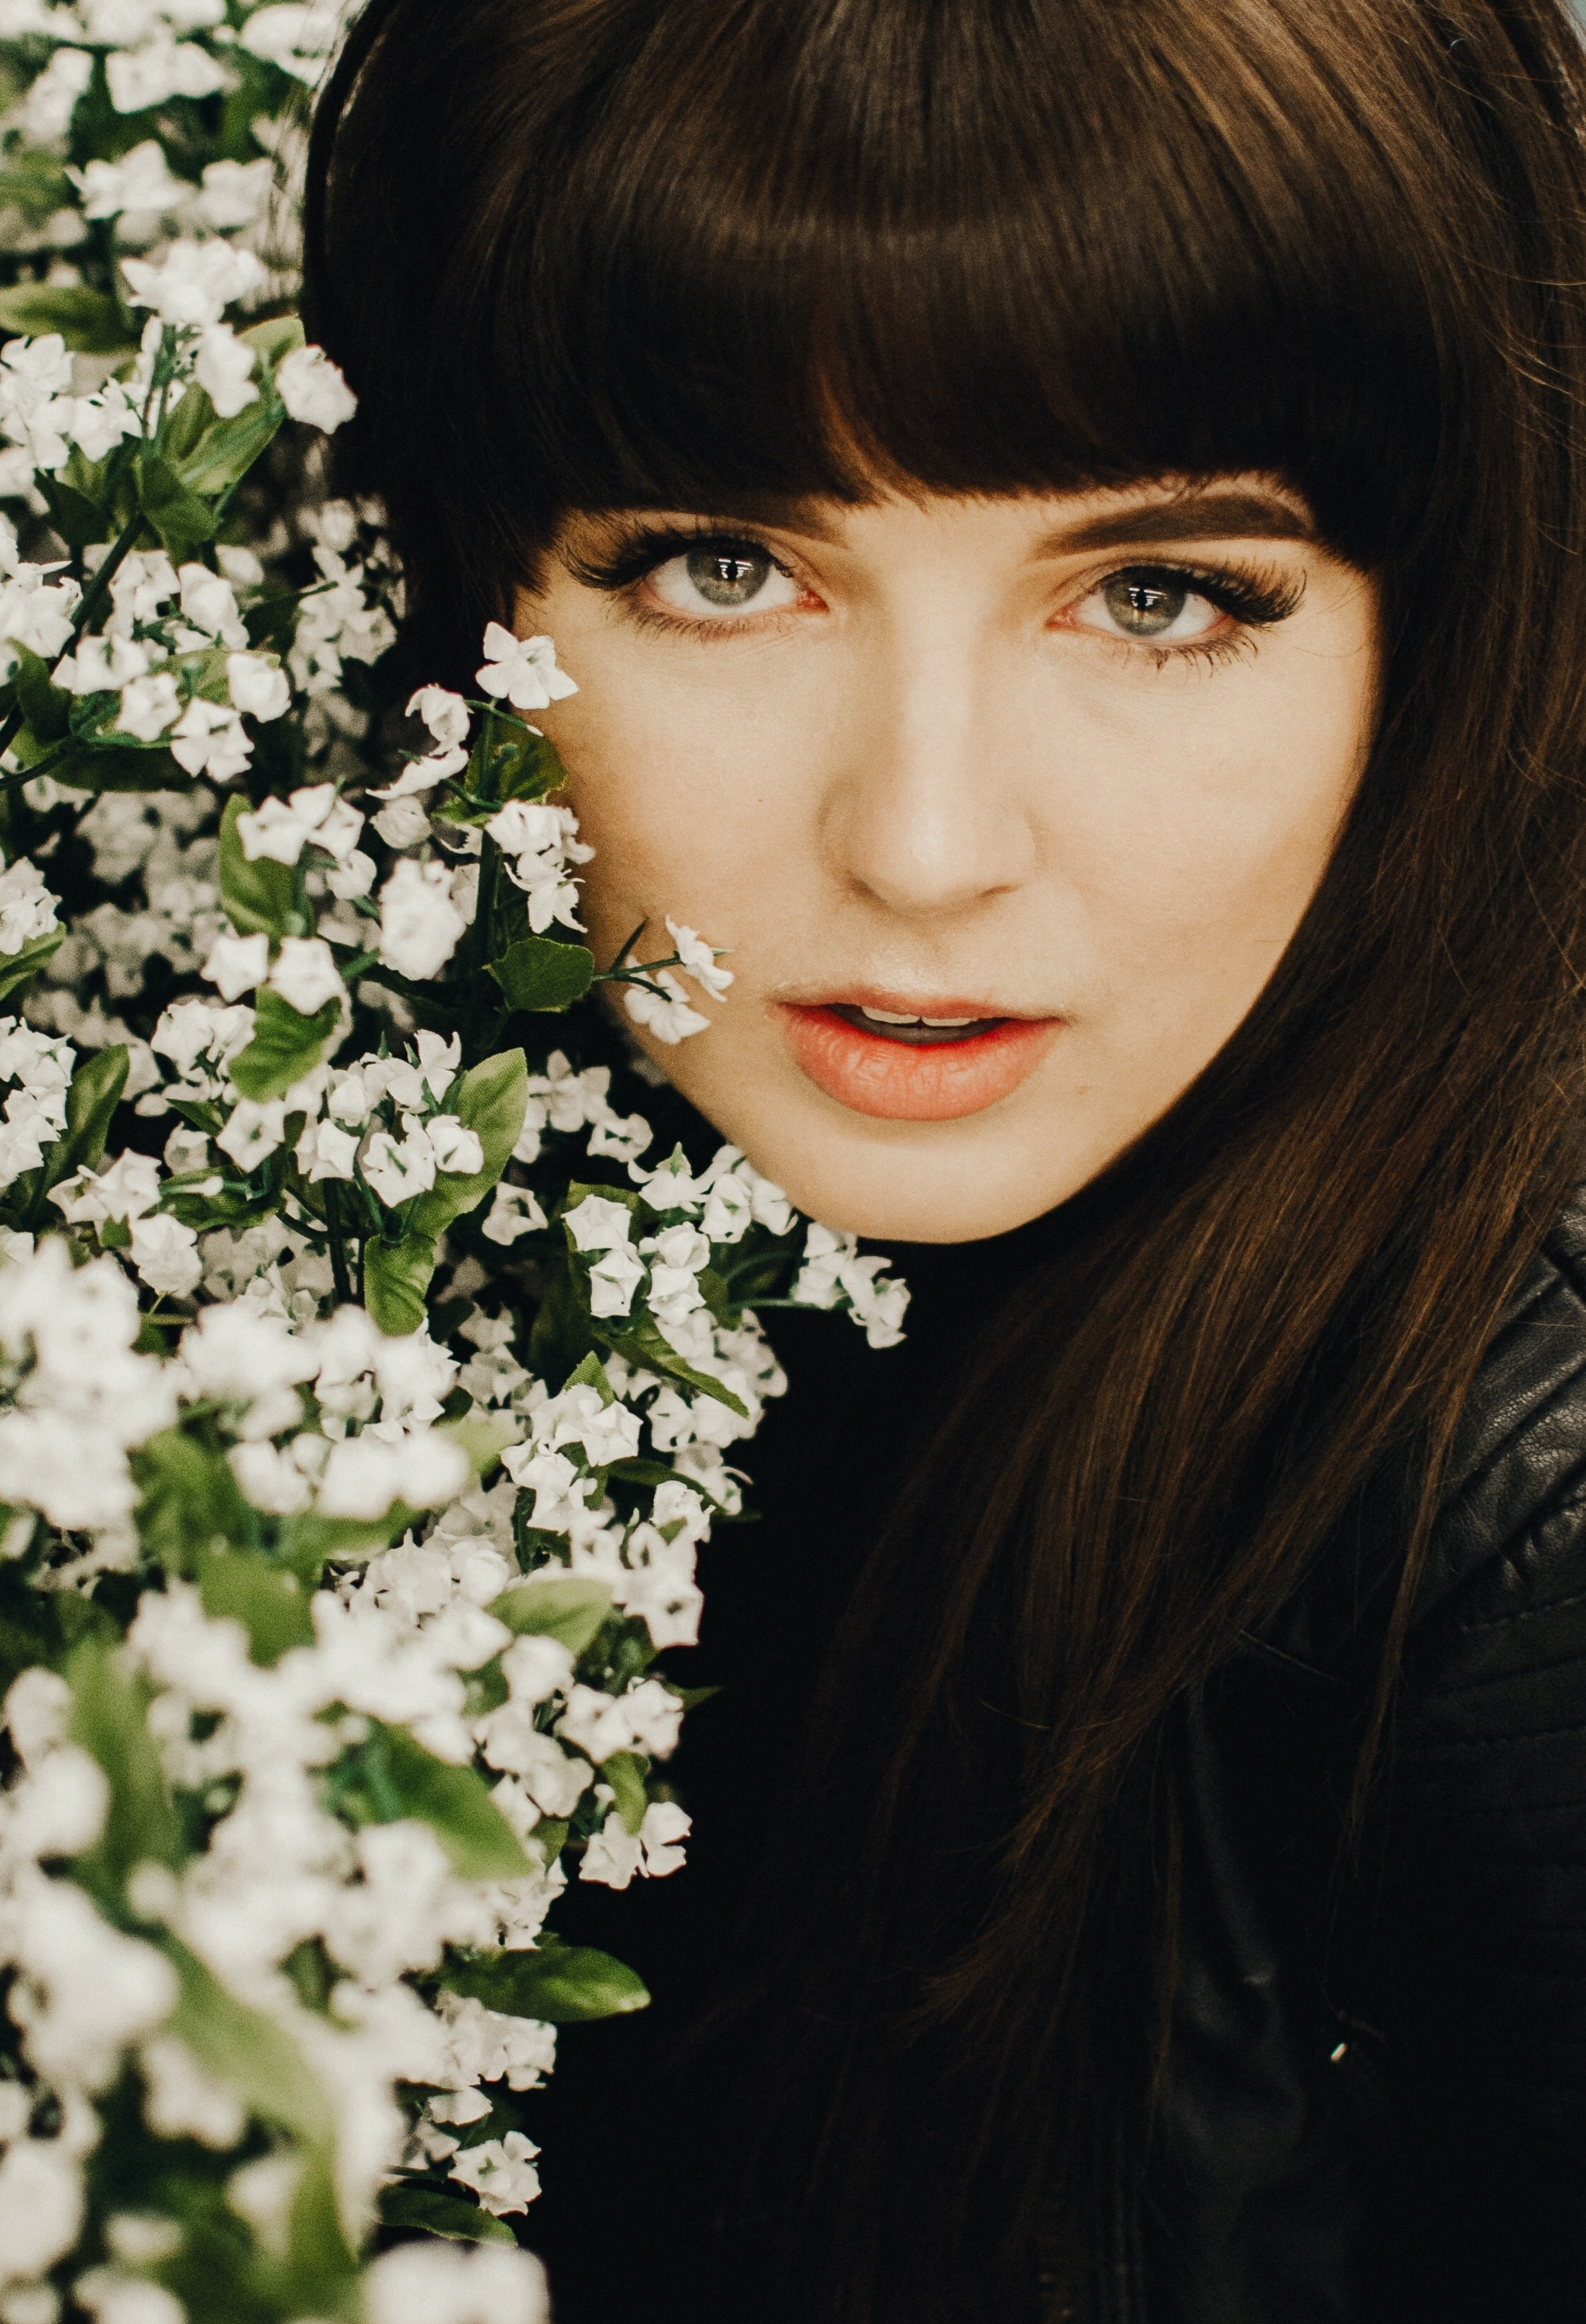 woman taking selfie near white flowers